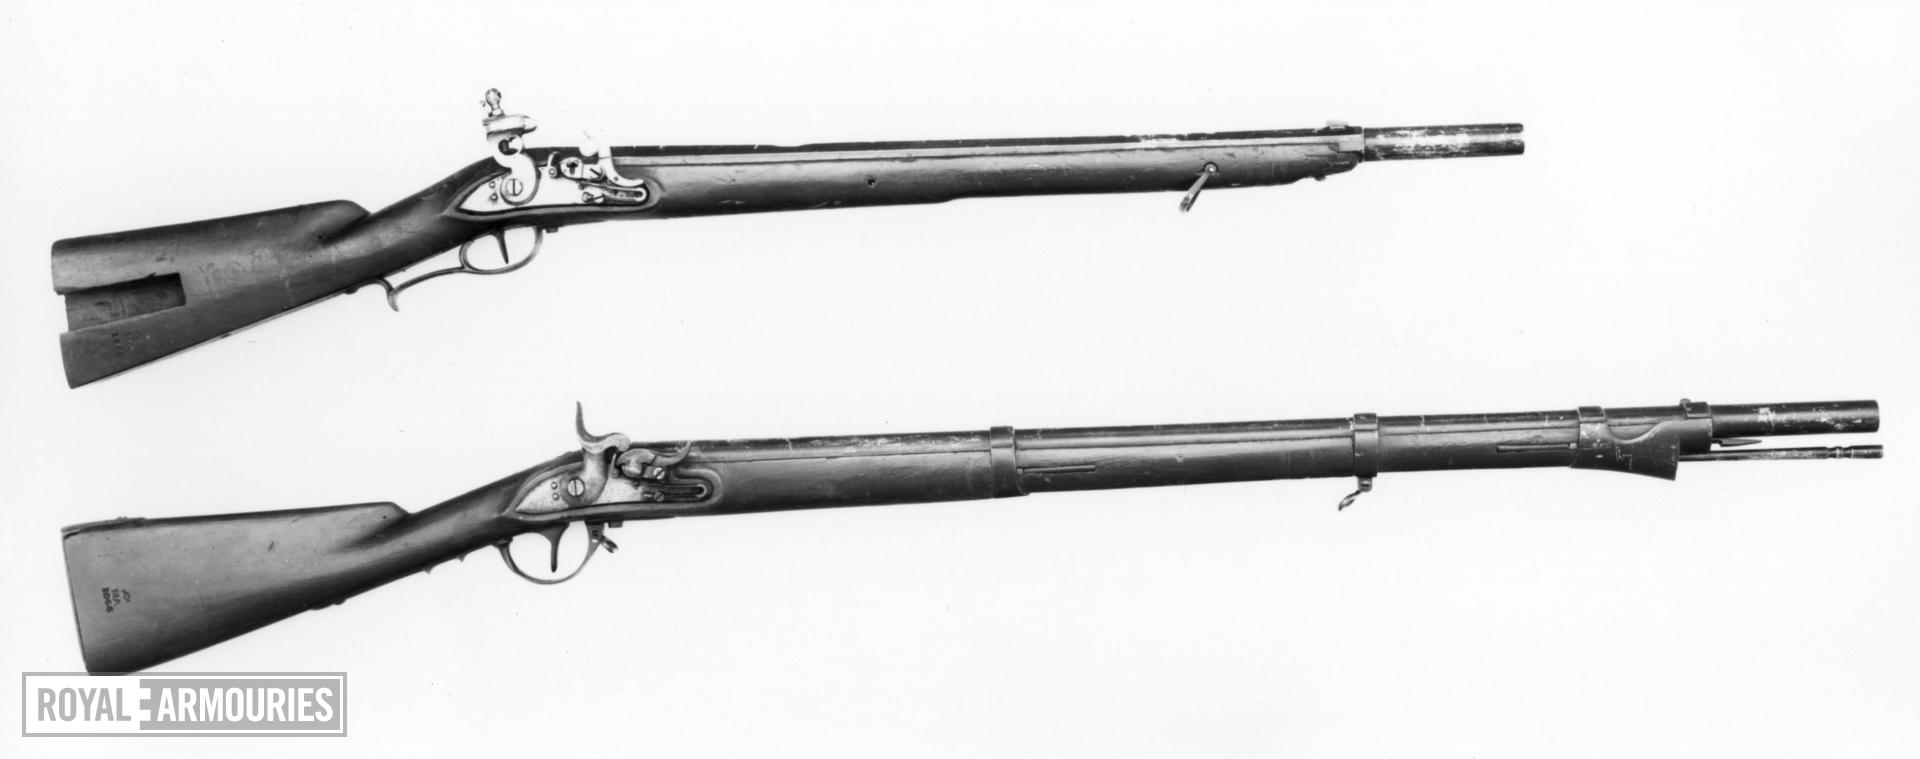 Percussion military carbine